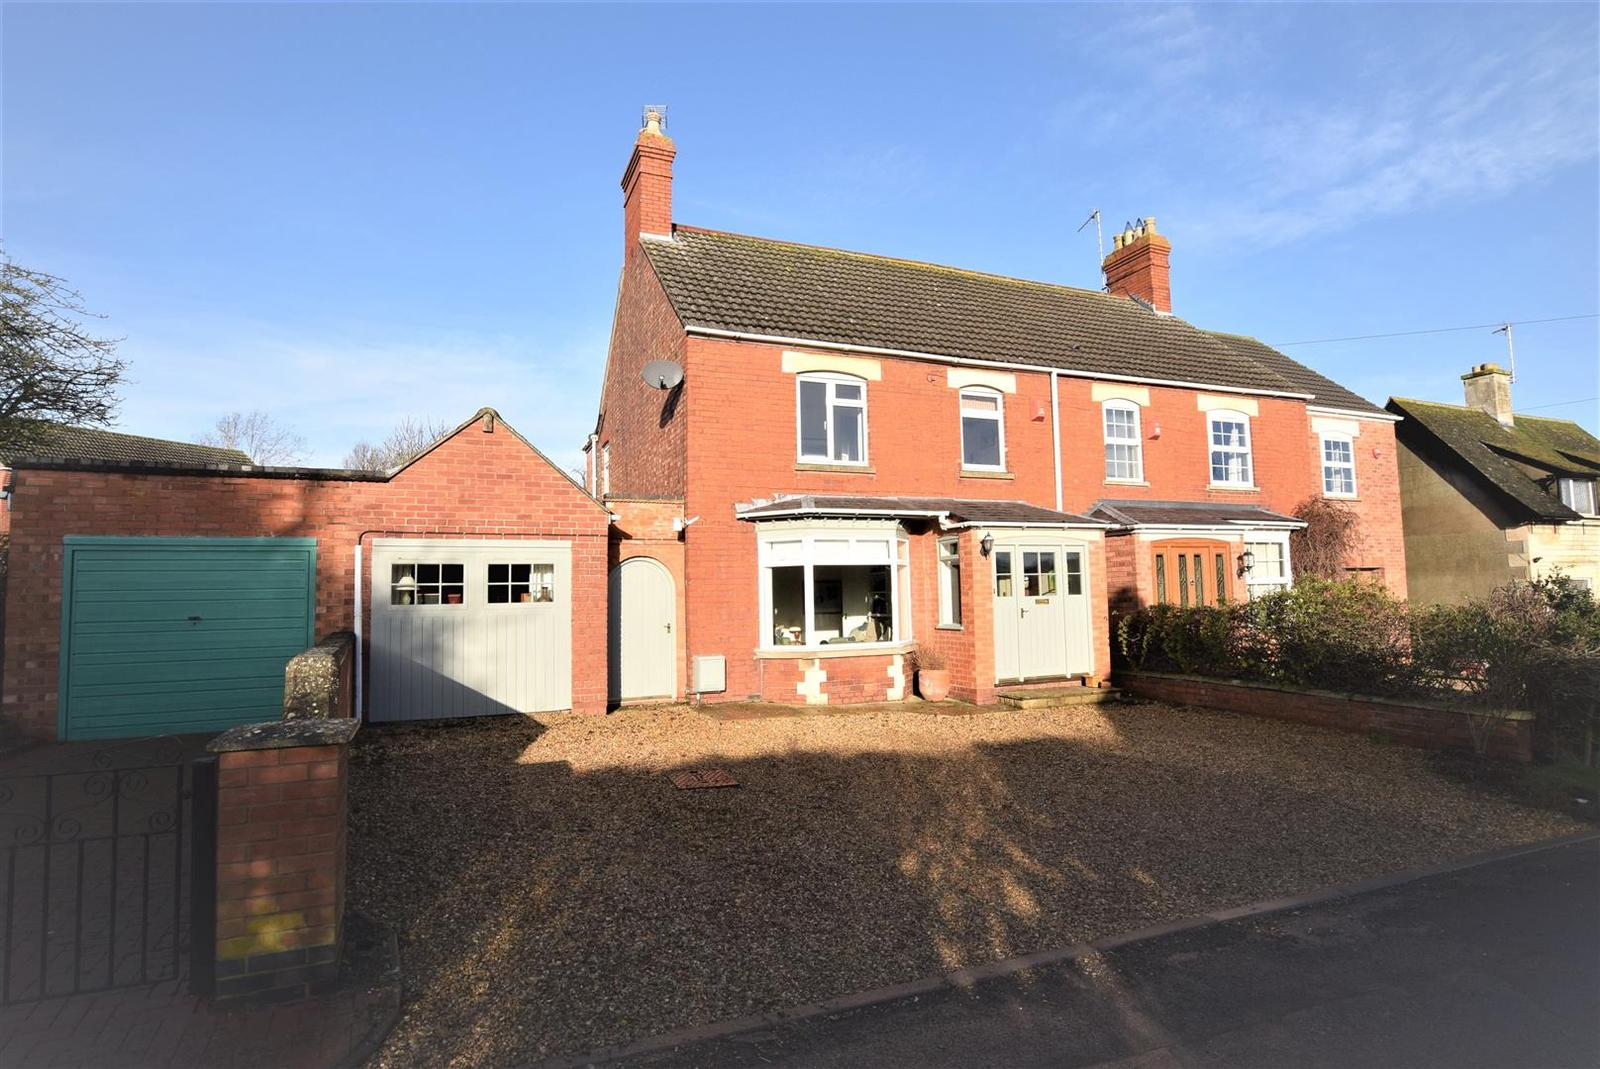 4 Bedrooms Detached House for sale in Cutting Lane, South Luffenham, Rutland